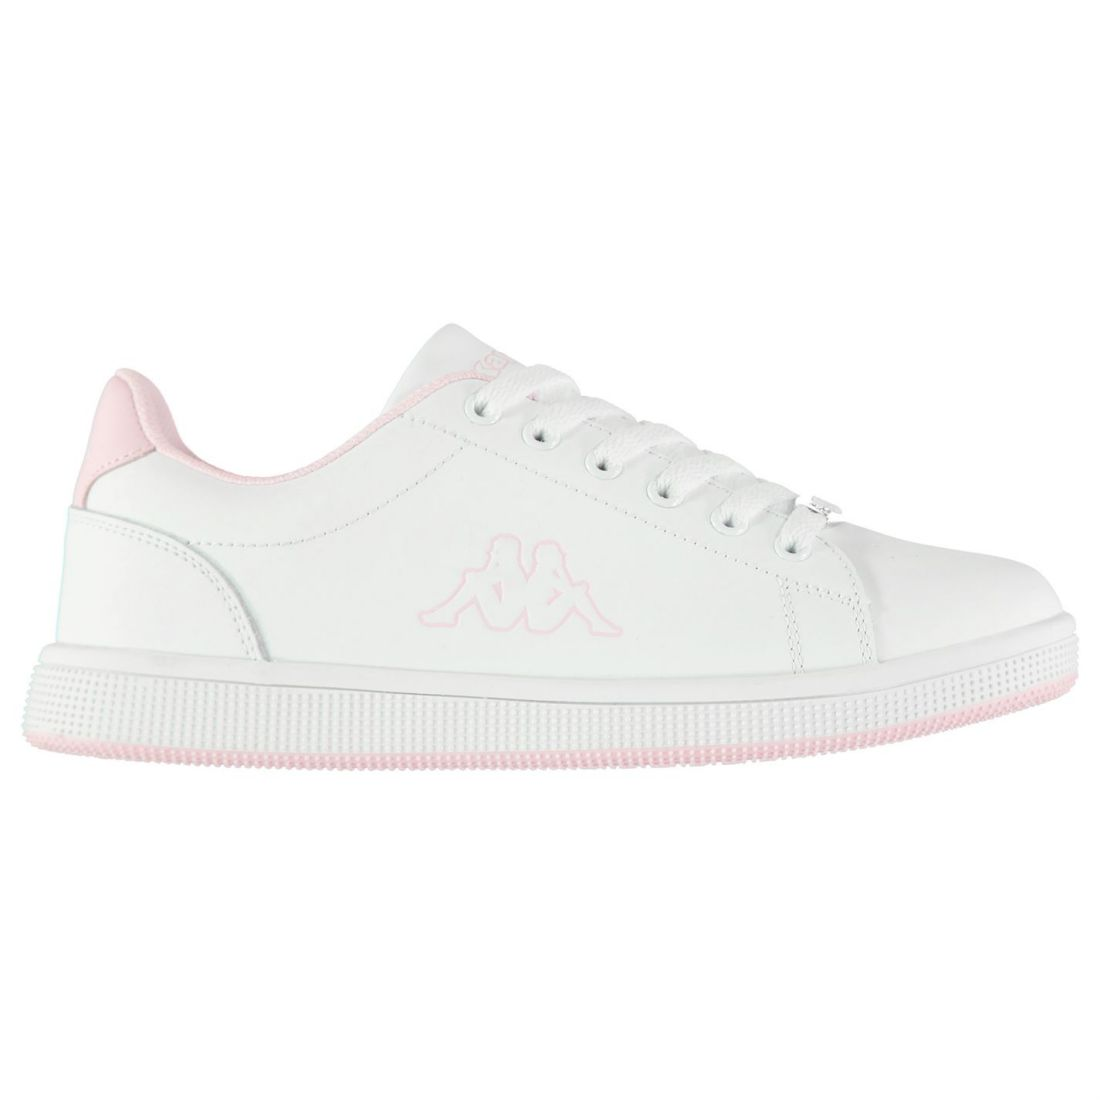 9774c931bd0d0 Kappa Maresas DLX Sneakers Ladies Court Laces Fastened Leather Upper 2 2 of  2 See More